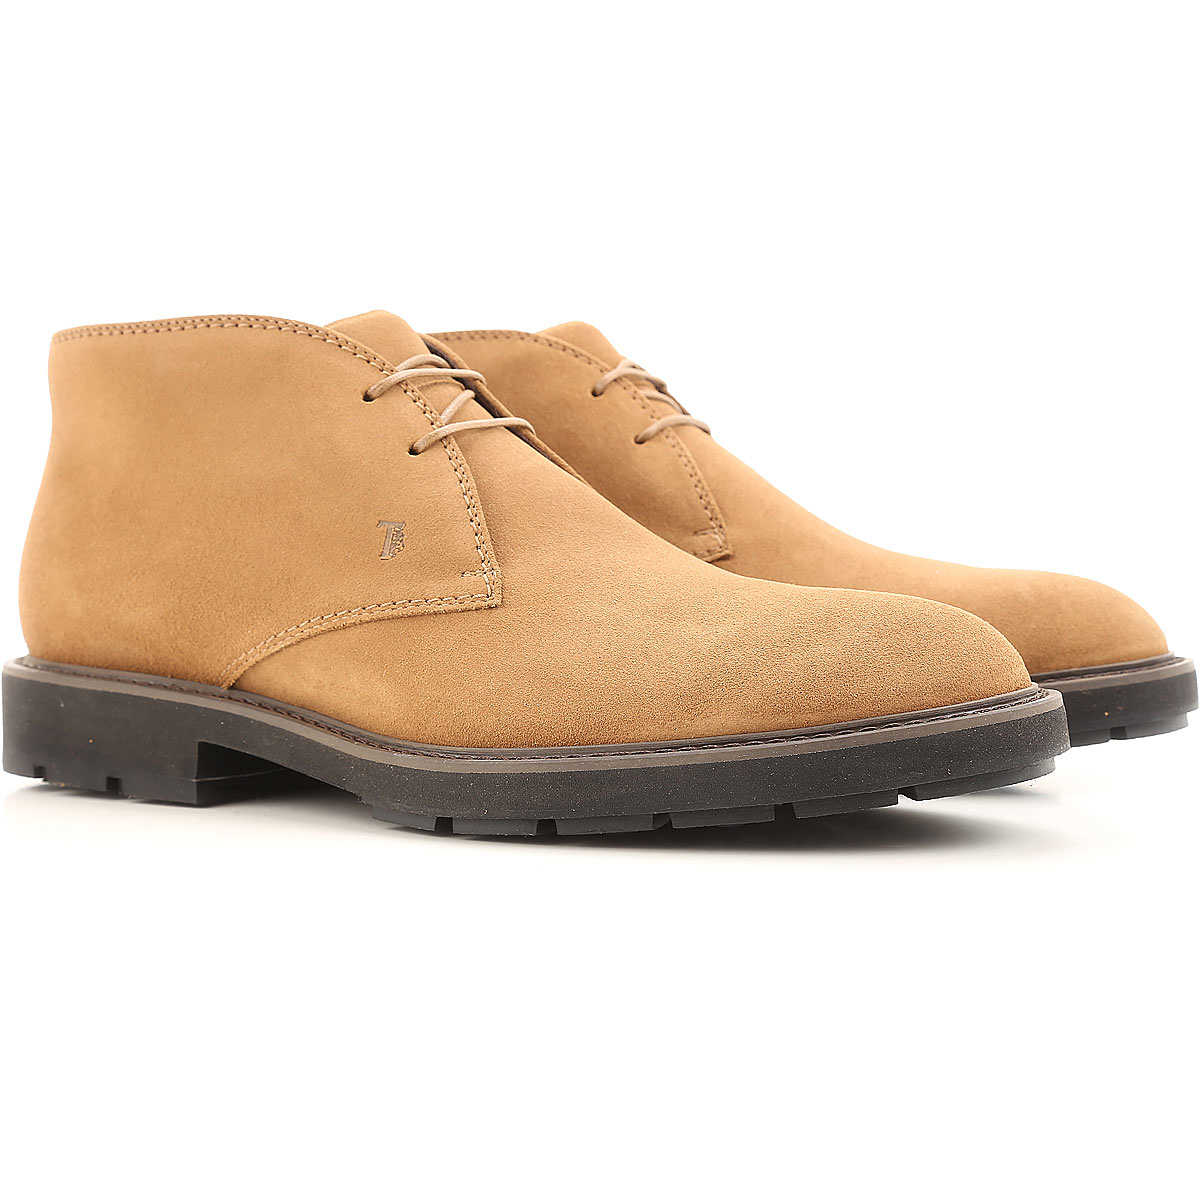 Tods Desert Boots Chukka for Men On Sale Biscuit - GOOFASH